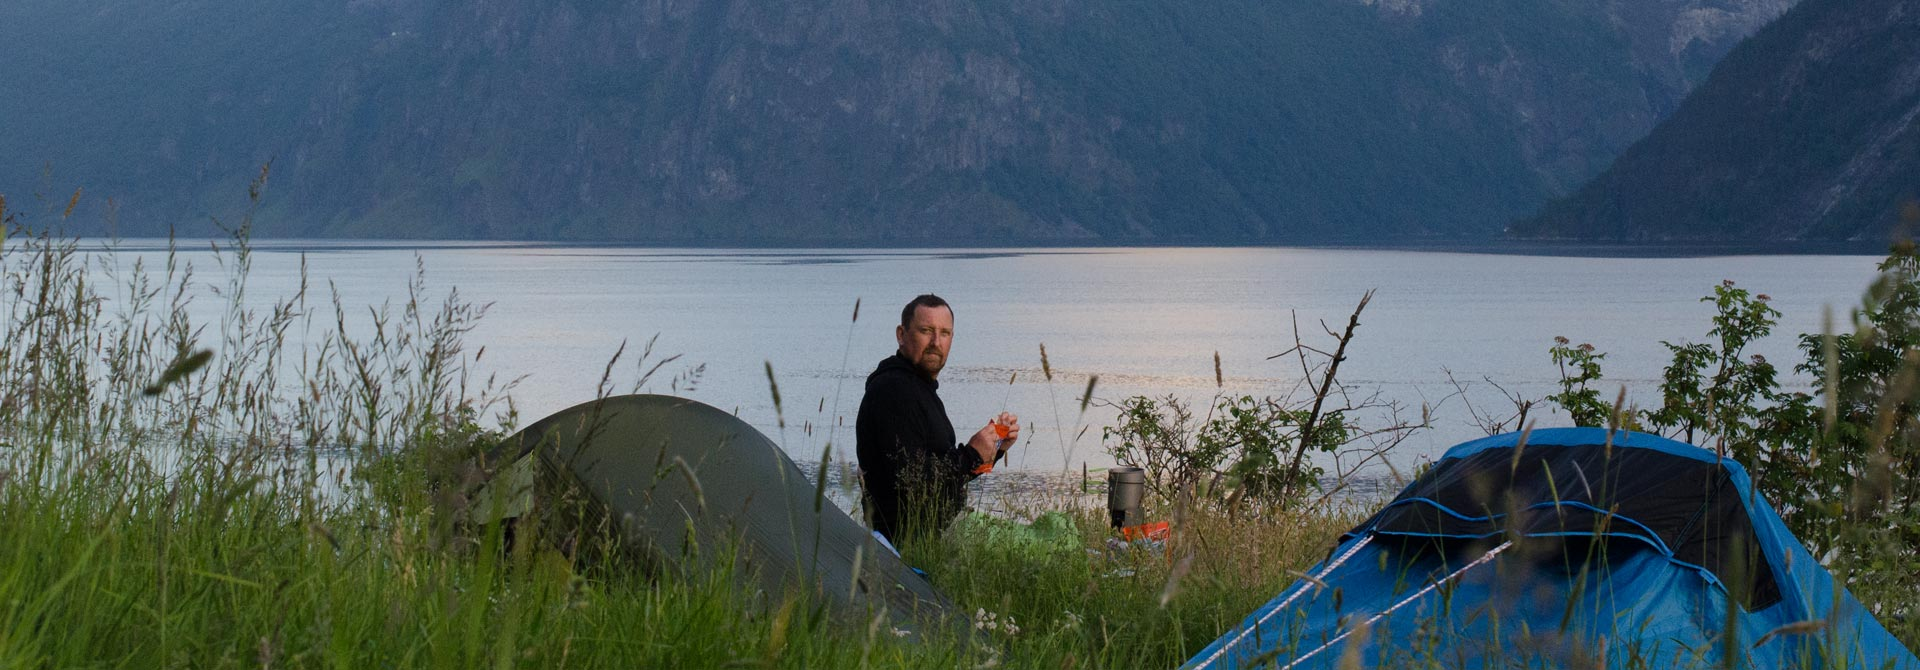 SUP Norway - Camping on Aurlandsfjord